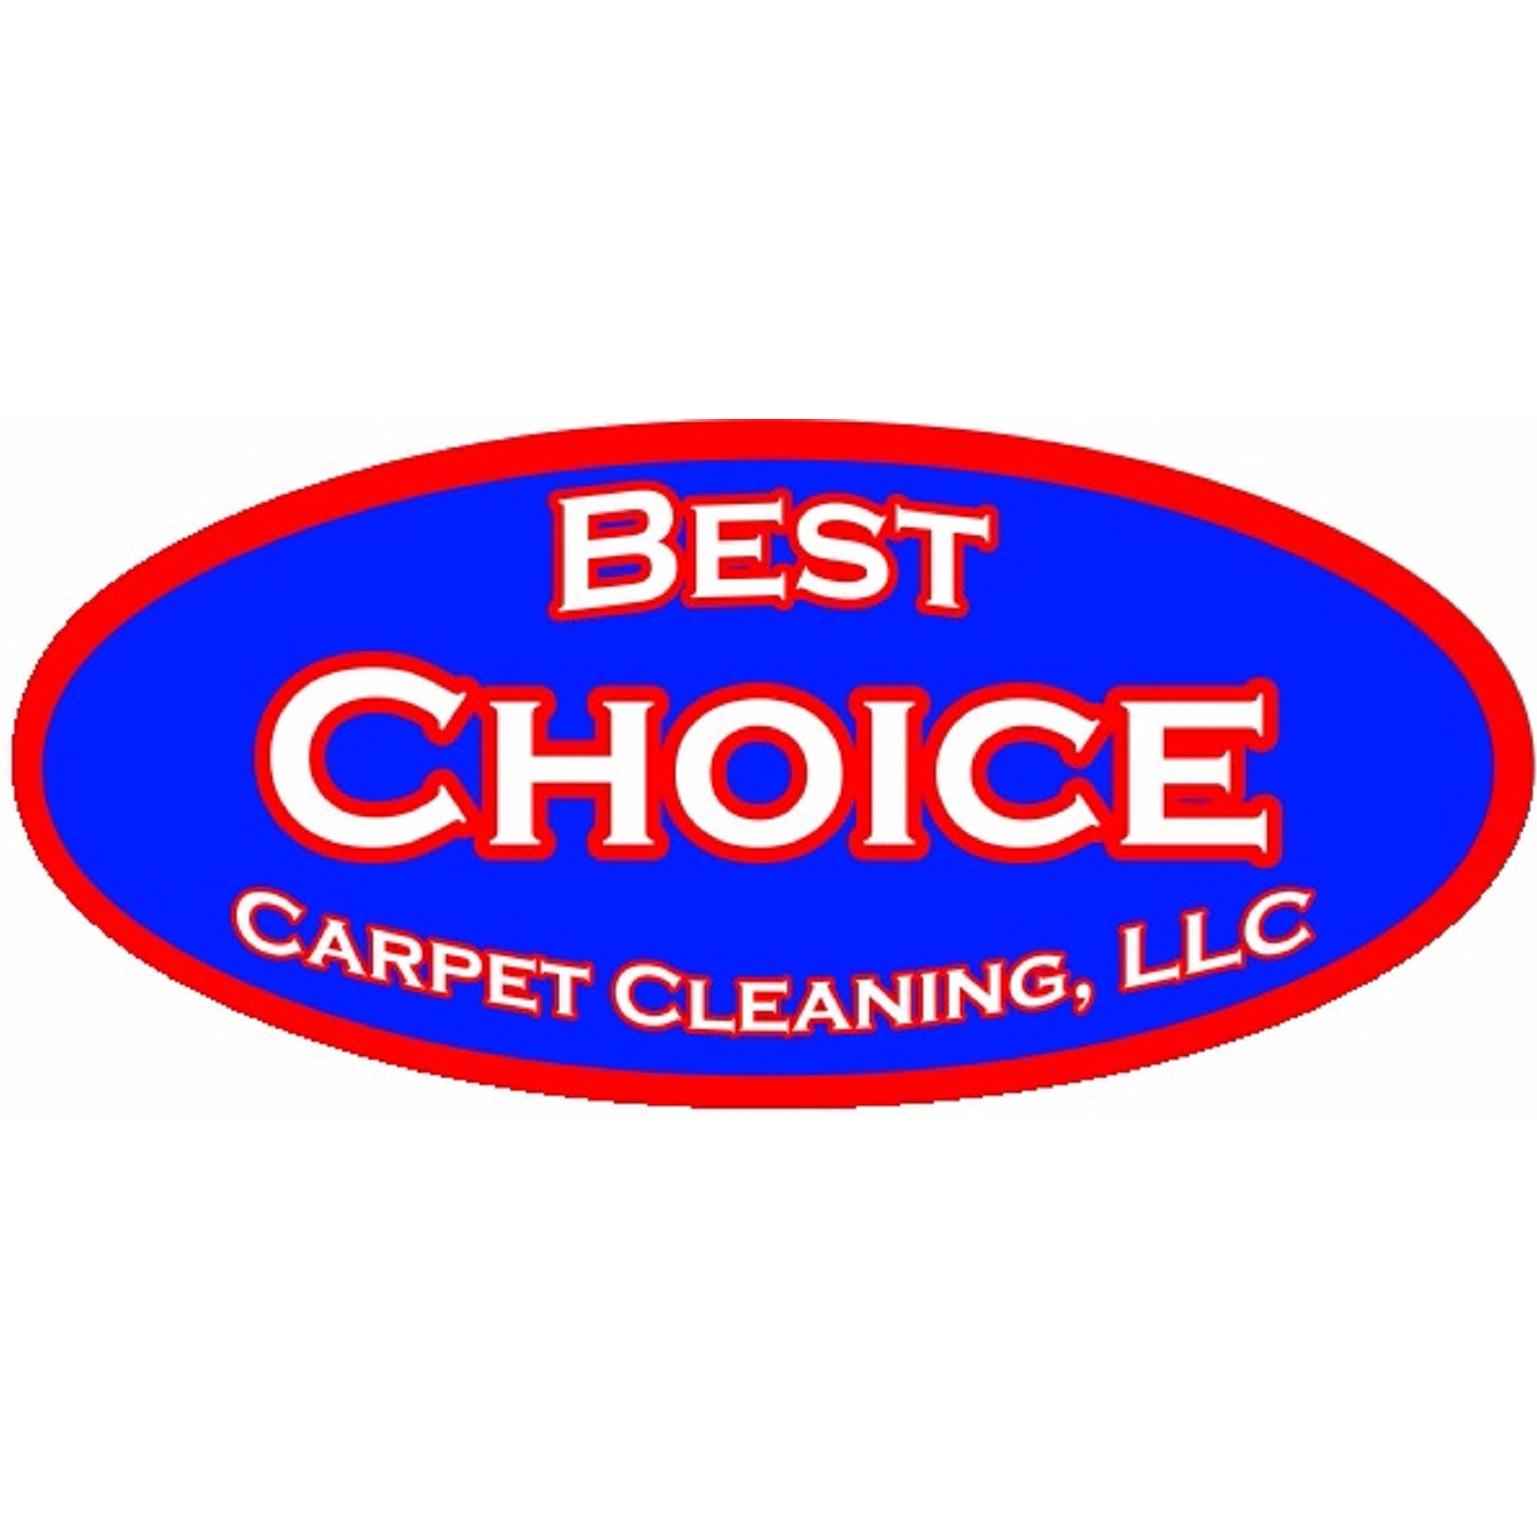 Best Choice Carpet Cleaning Llc In Vass Nc 28394